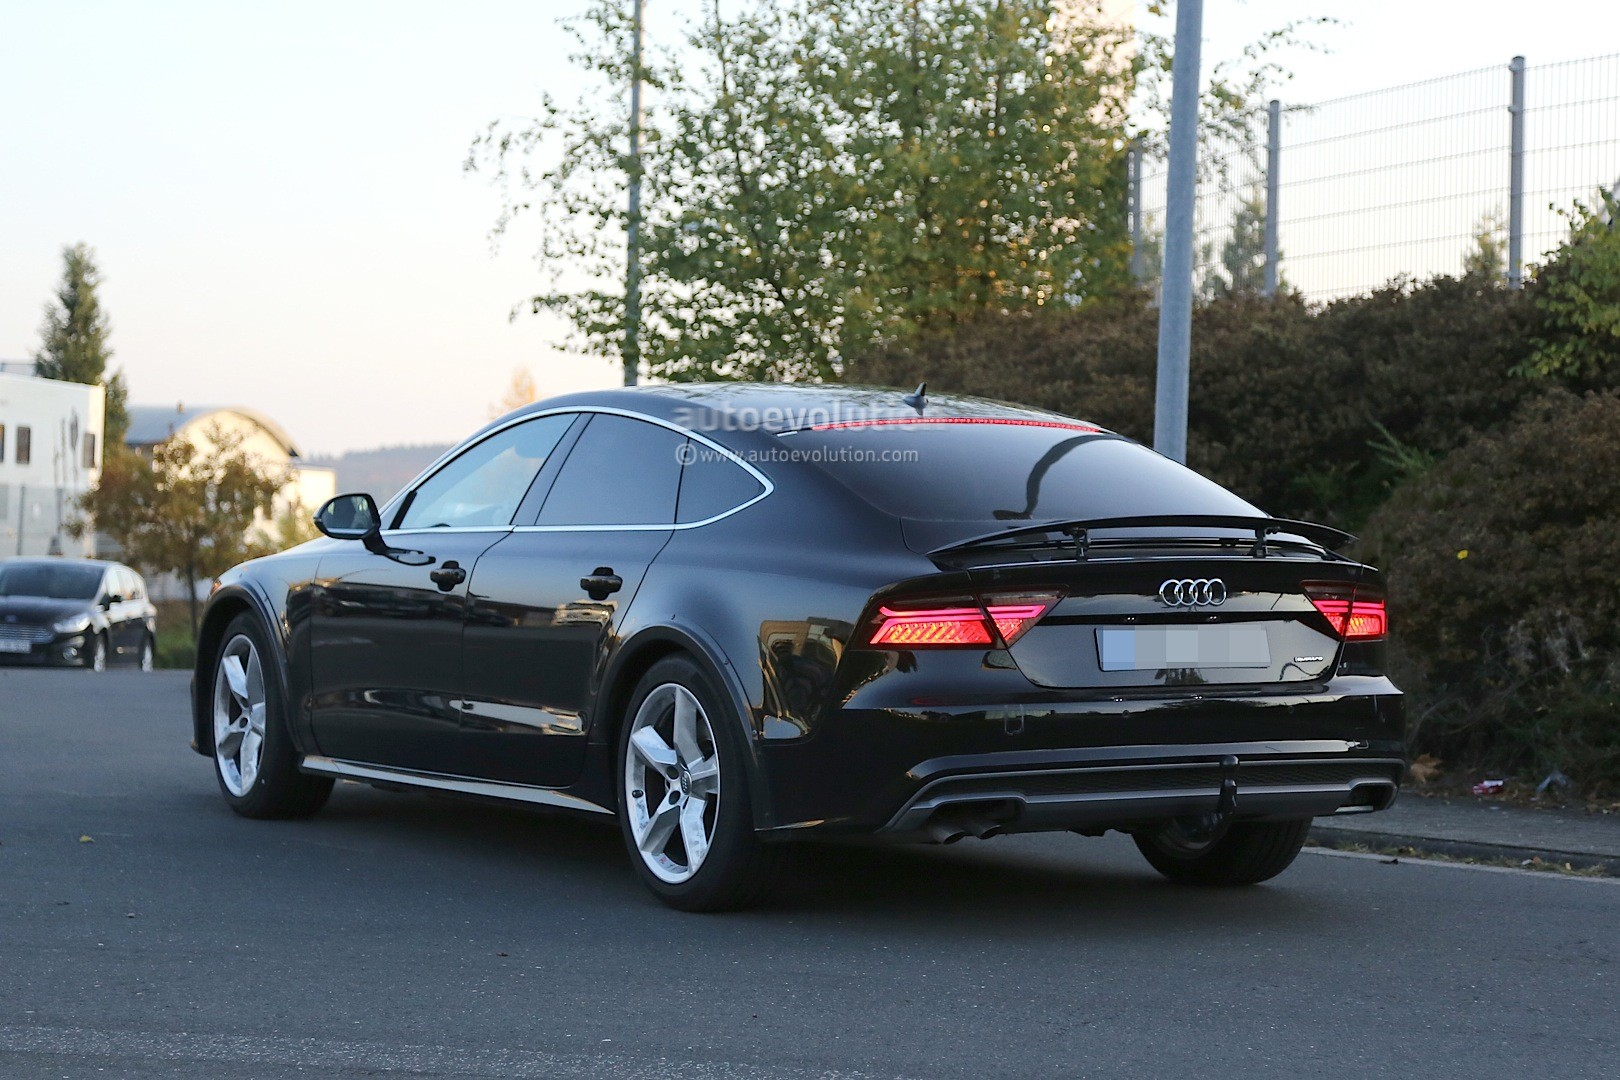 Spyshots: 2018 Audi A7 Chassis Testing Mule Seen for the First Time ...